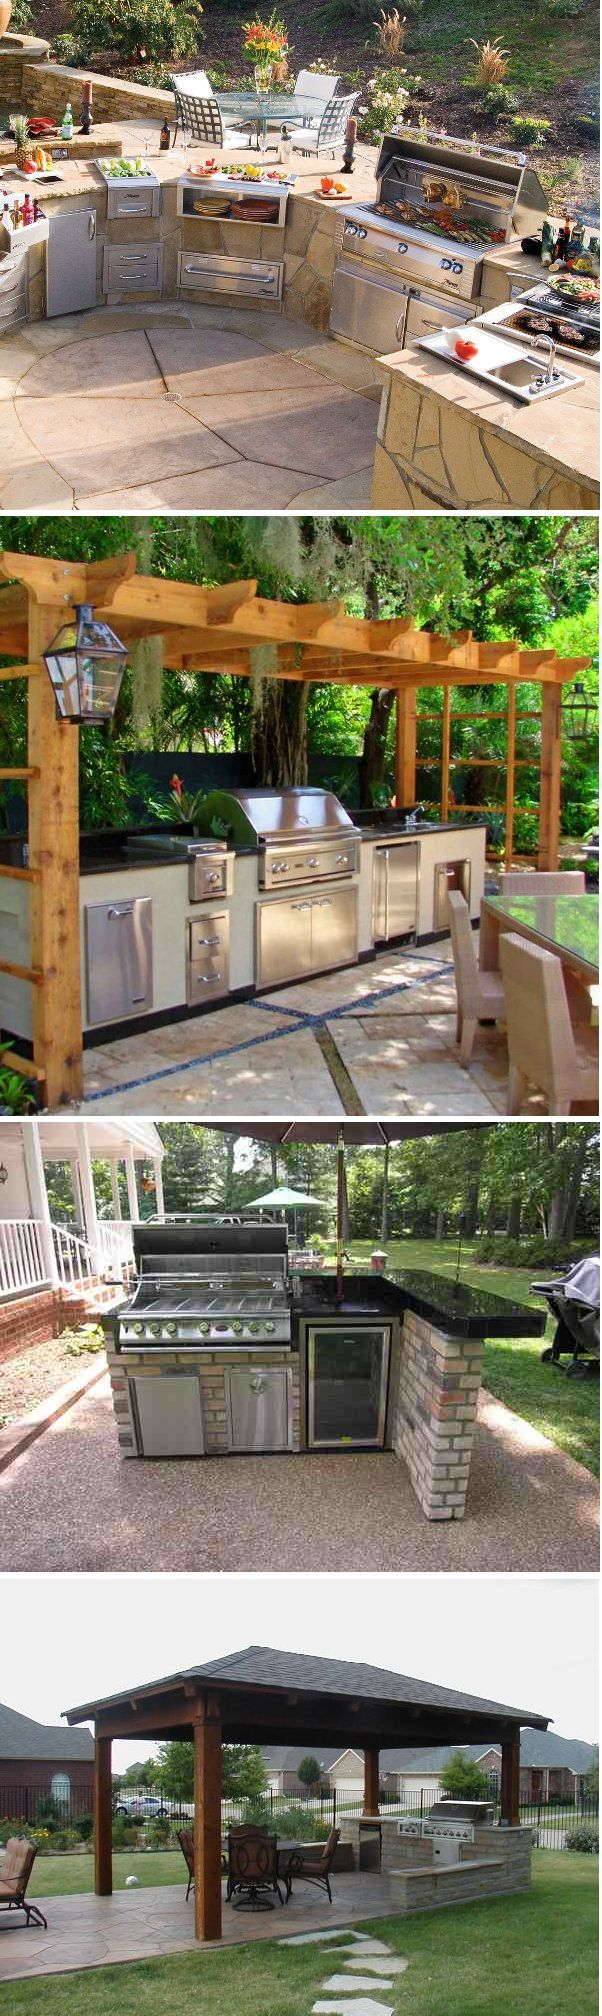 outdoor kitchen design ideas constrir es el arte de crear infraestructura - Outdoor Grill Design Ideas